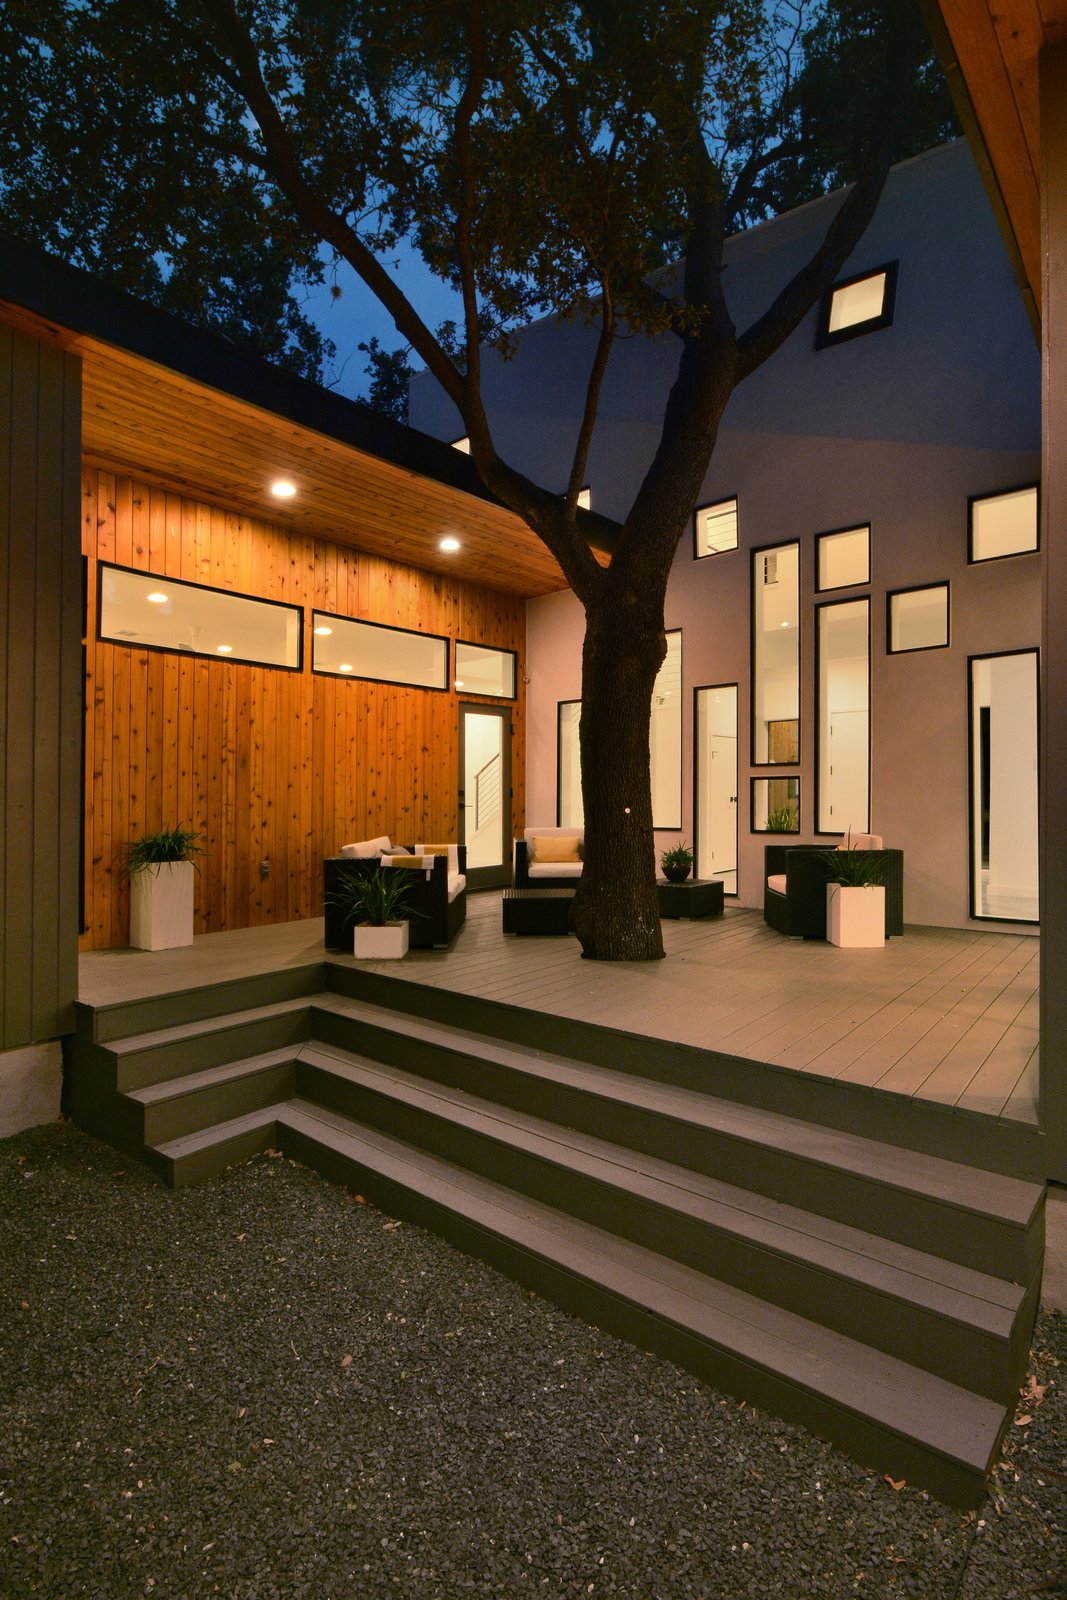 The central oak tree sprouts out of the rear deck. The atrium's array of windows draw the eye in the tree's direction. The wood cladding of the single-story wings provide a pleasant contrast with the central volume's stucco finish.  190+ Best Modern Staircase Ideas from A Mighty Oak Tree Frames This Family Home in Austin